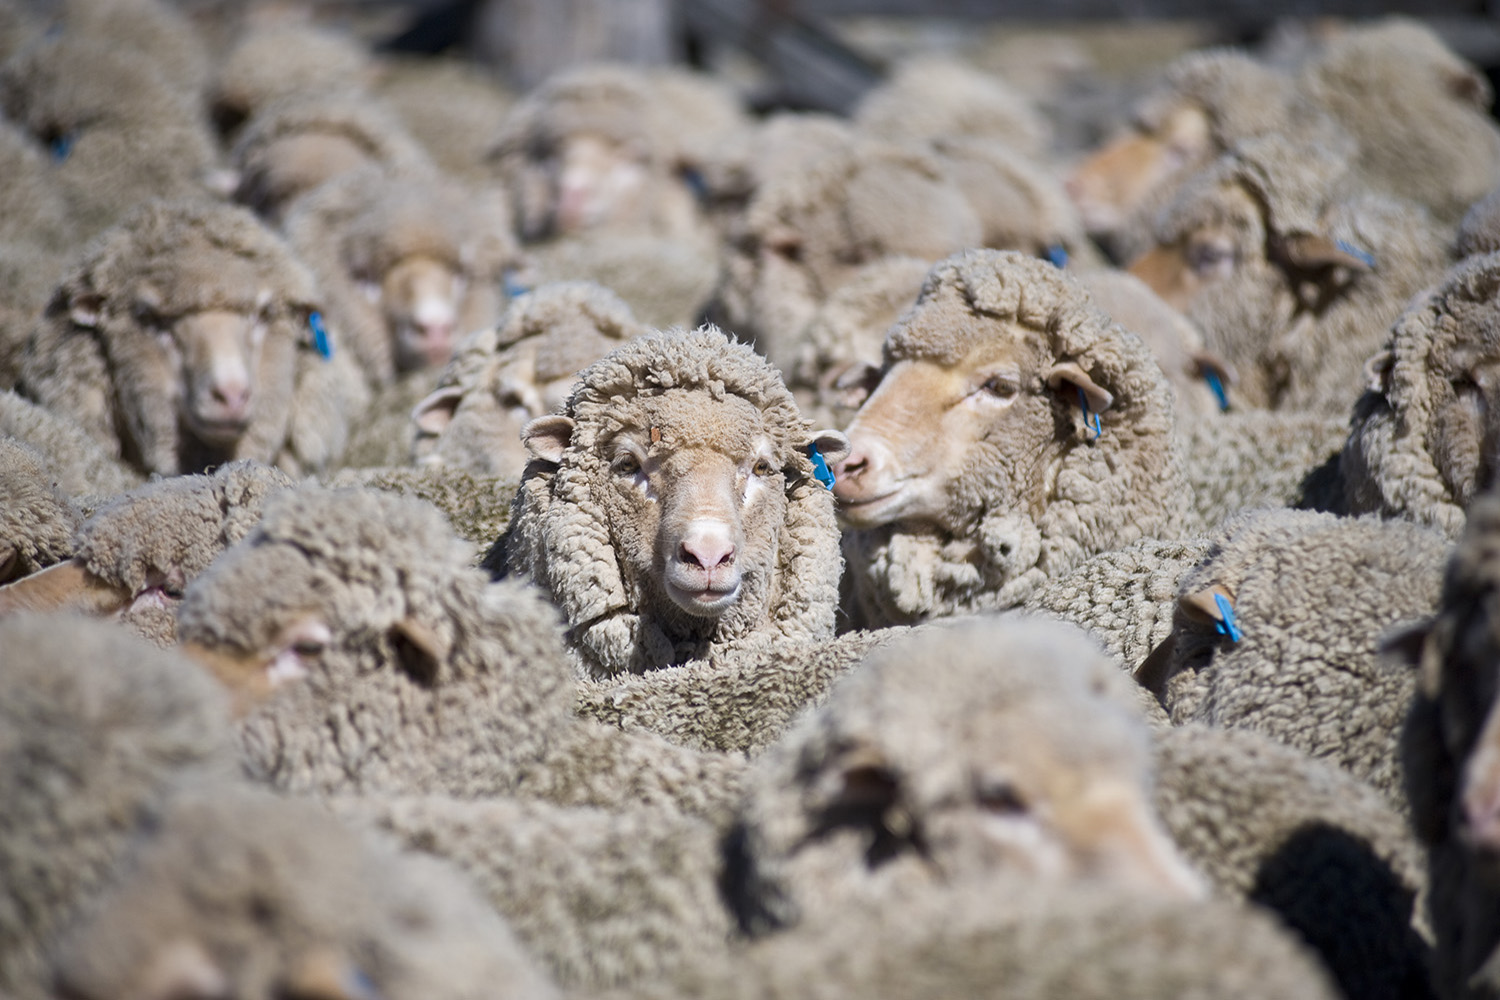 image of AARONTAIT COPYRIGHTED 2014 384 RURAL PHOTOGRAPHER FARM LIFE AGRICULTURE WOOL BEEF STOCKMAN MUSTER CATTLE FARM AUSTRALIAN SHEEP FLOCK